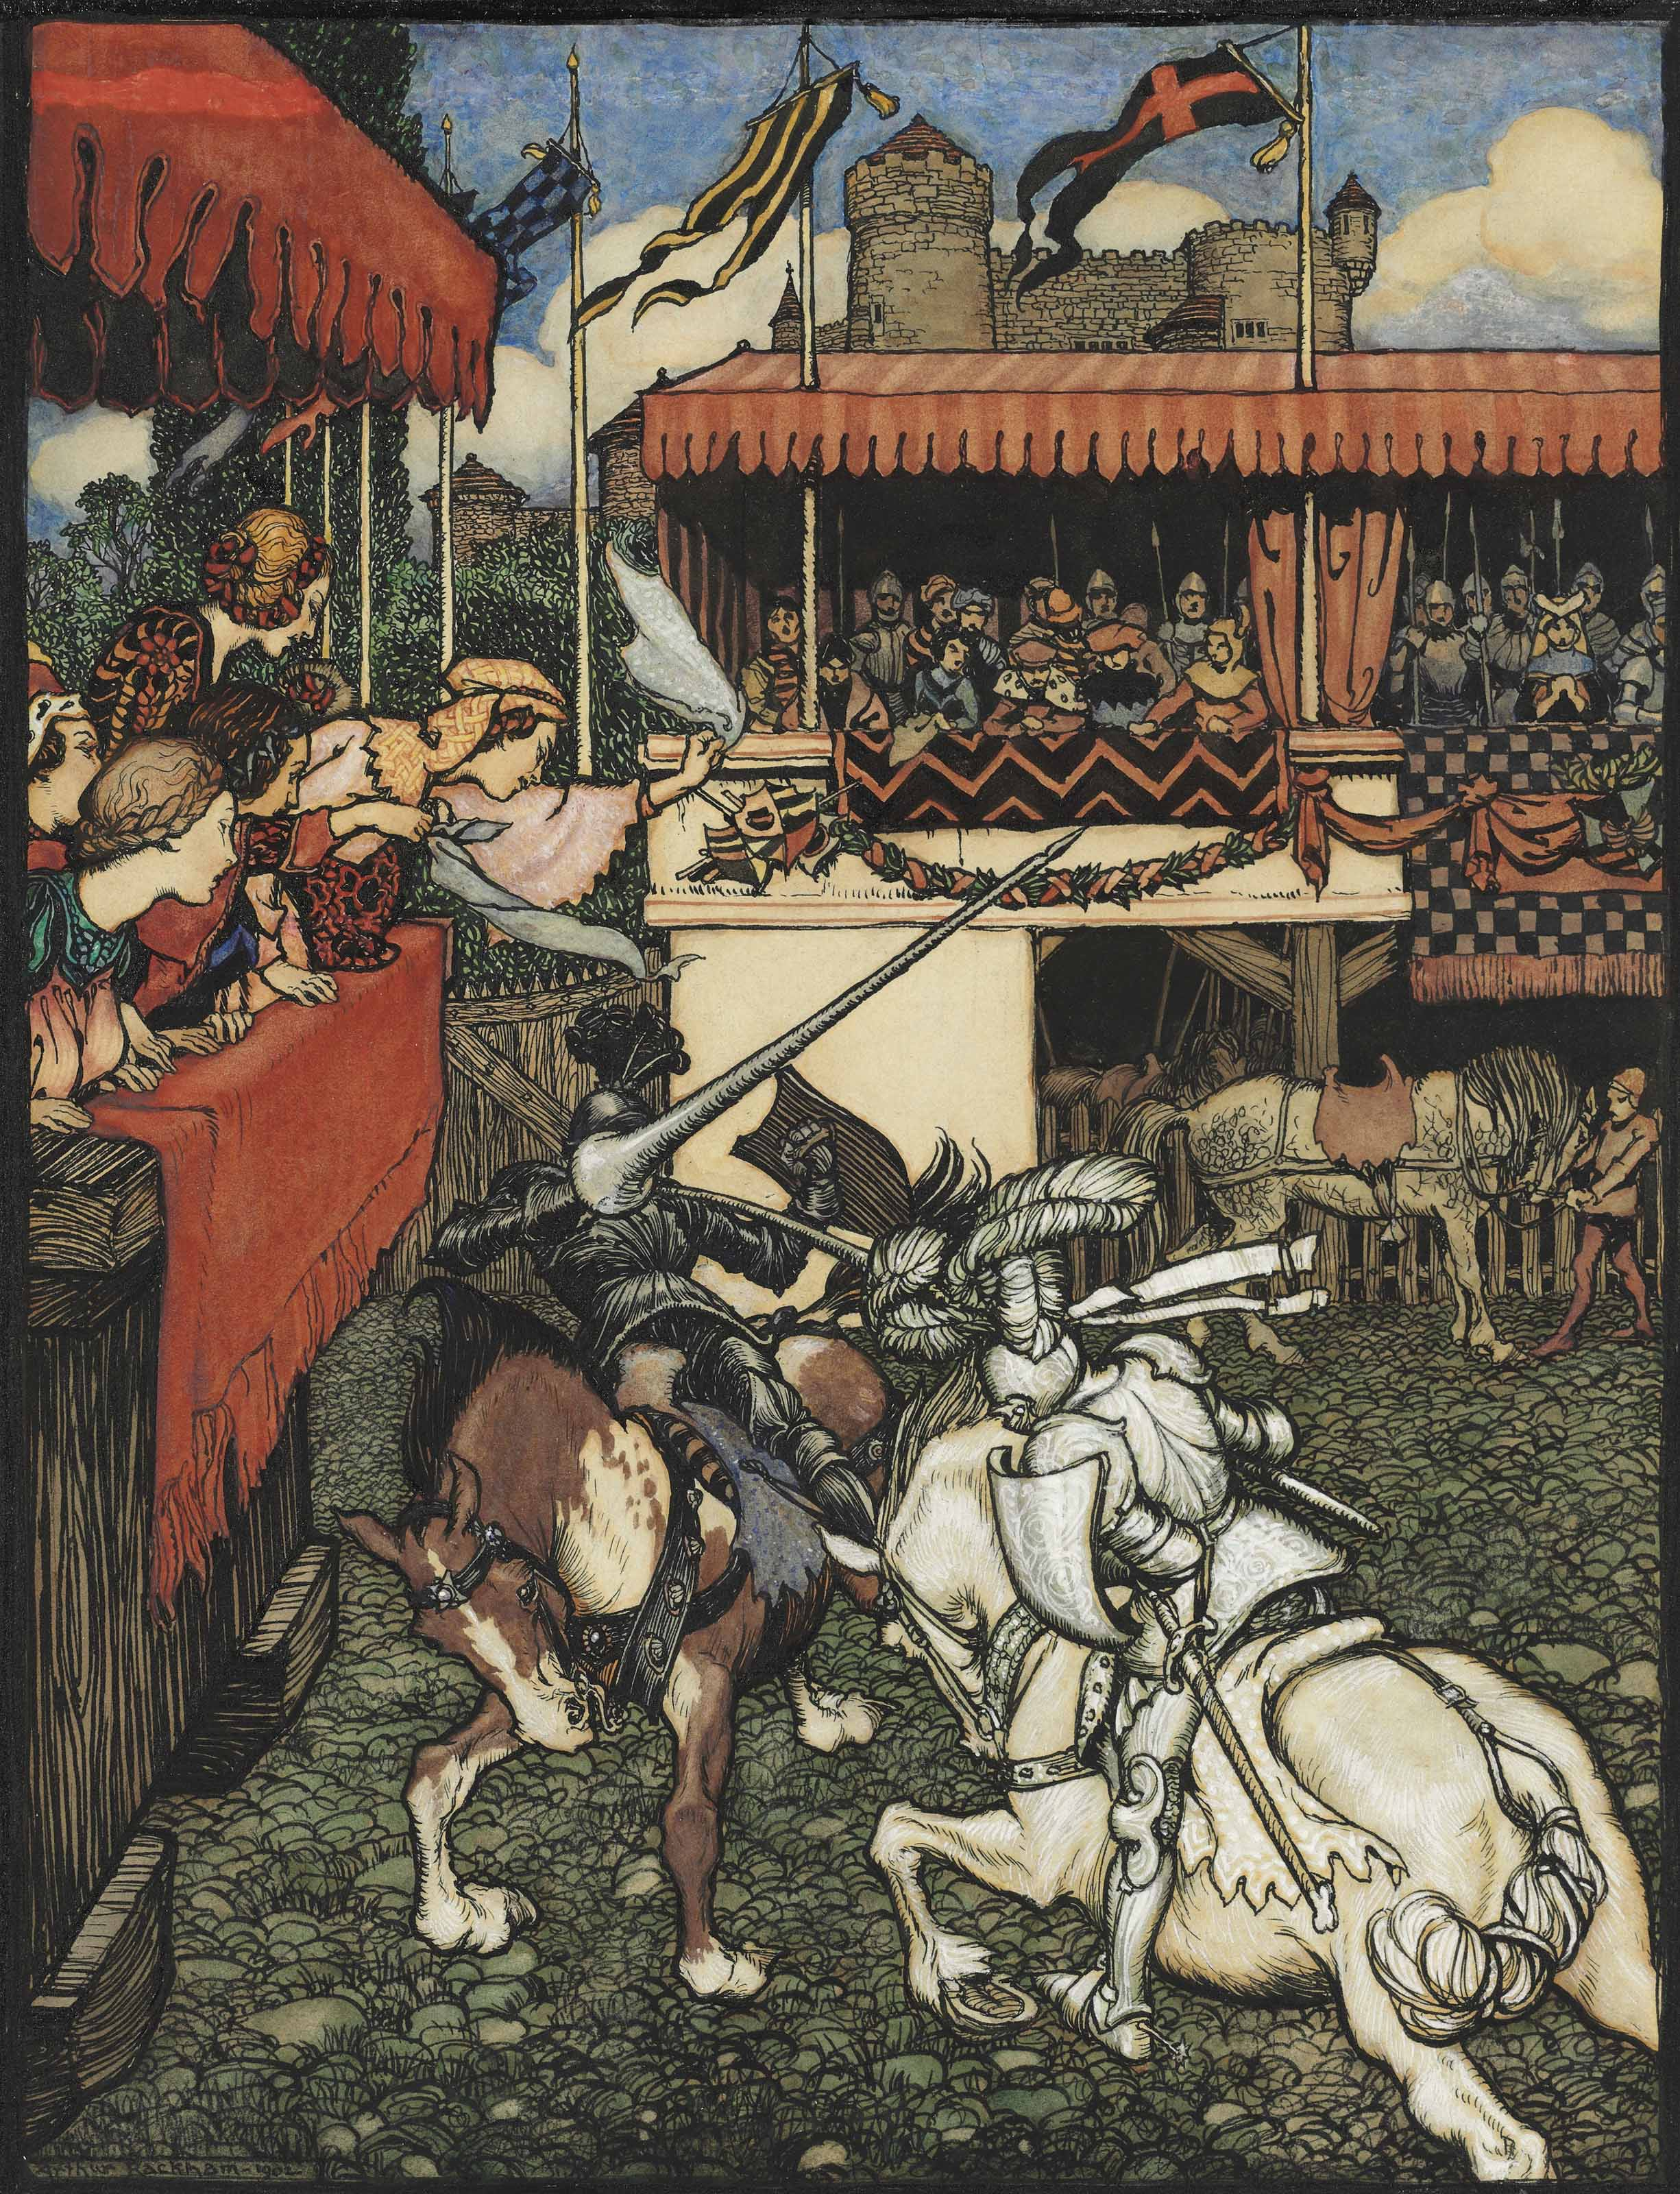 Sir Tristram defeats Sir Palamedes in Ireland